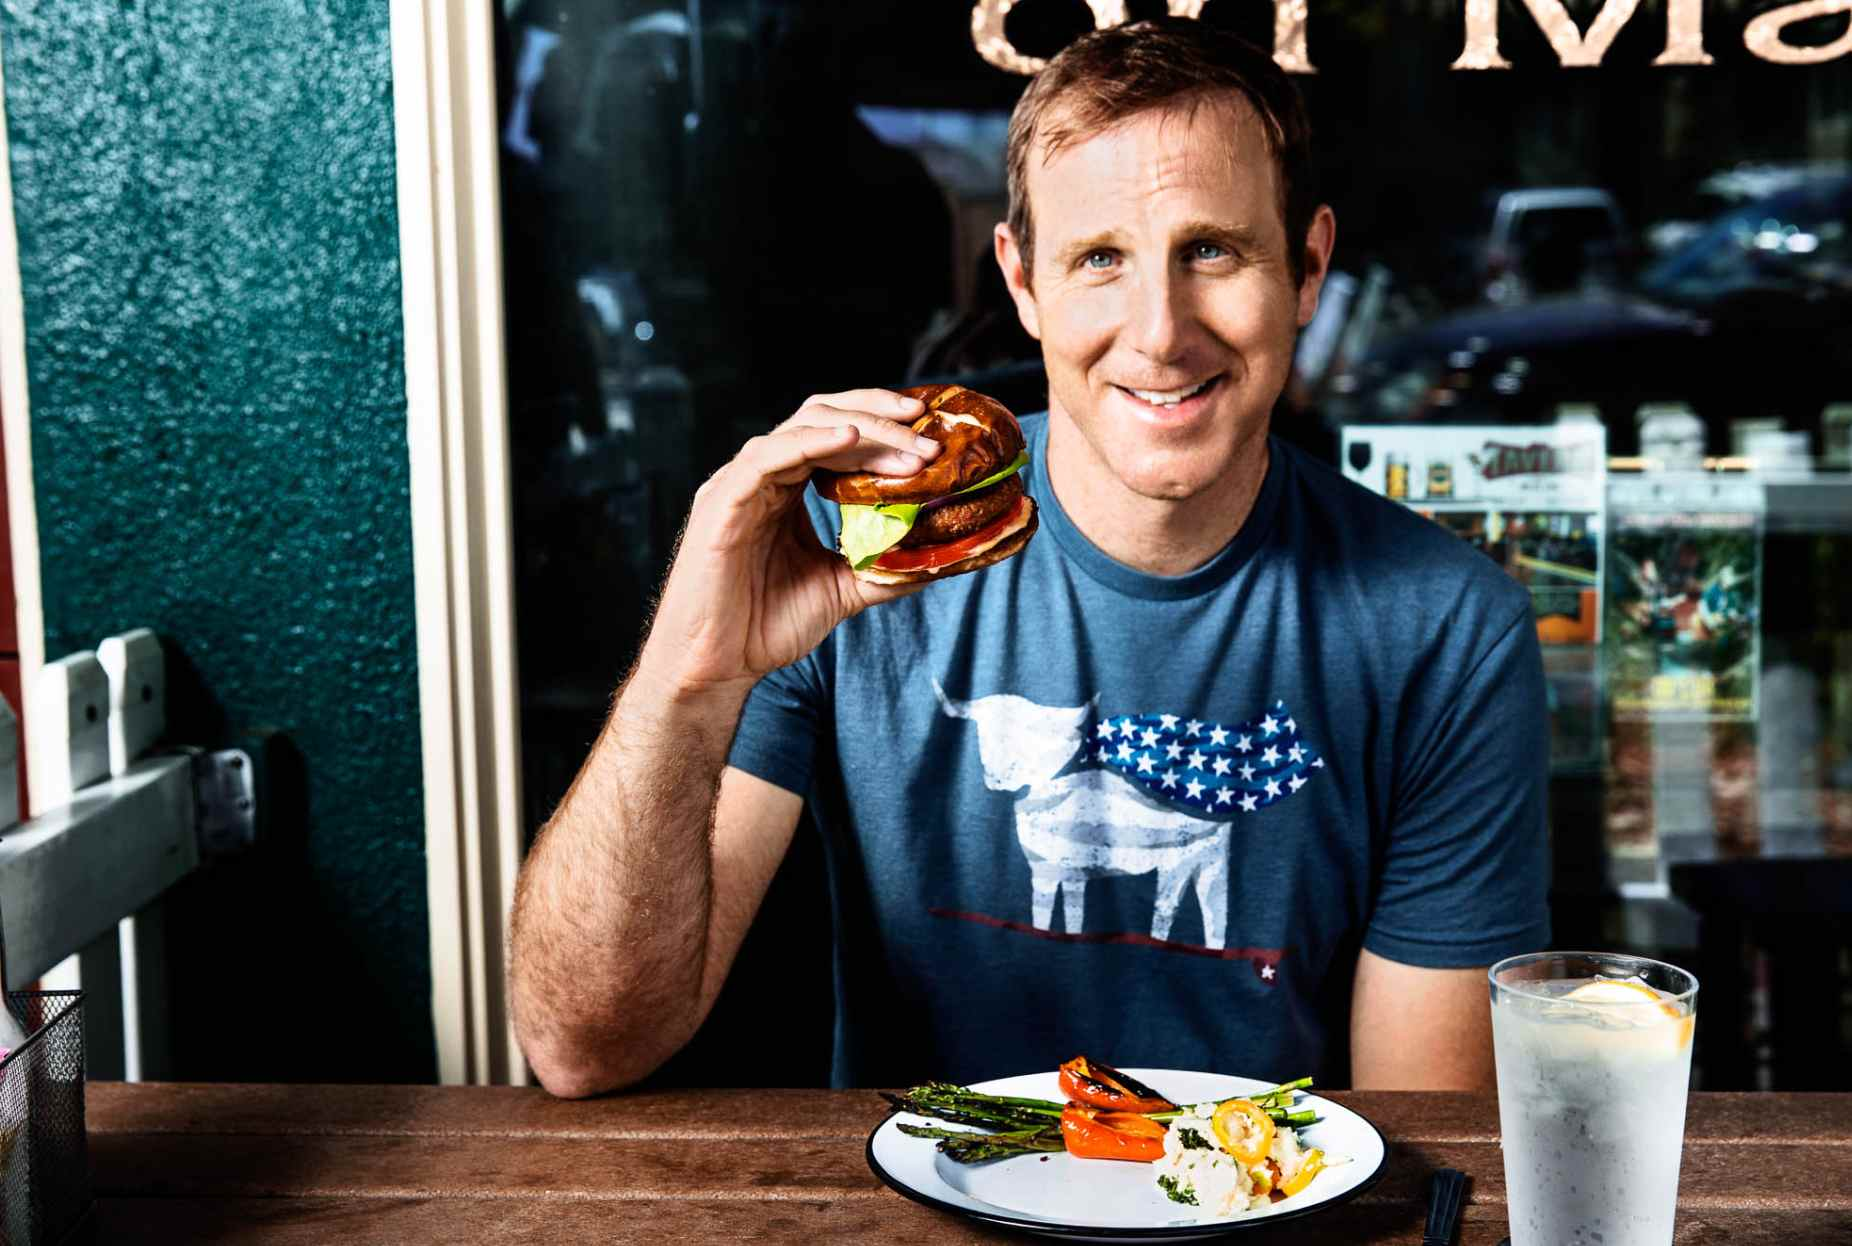 Beyond Meat Founder Ethan Brown eats a Beyond Burger